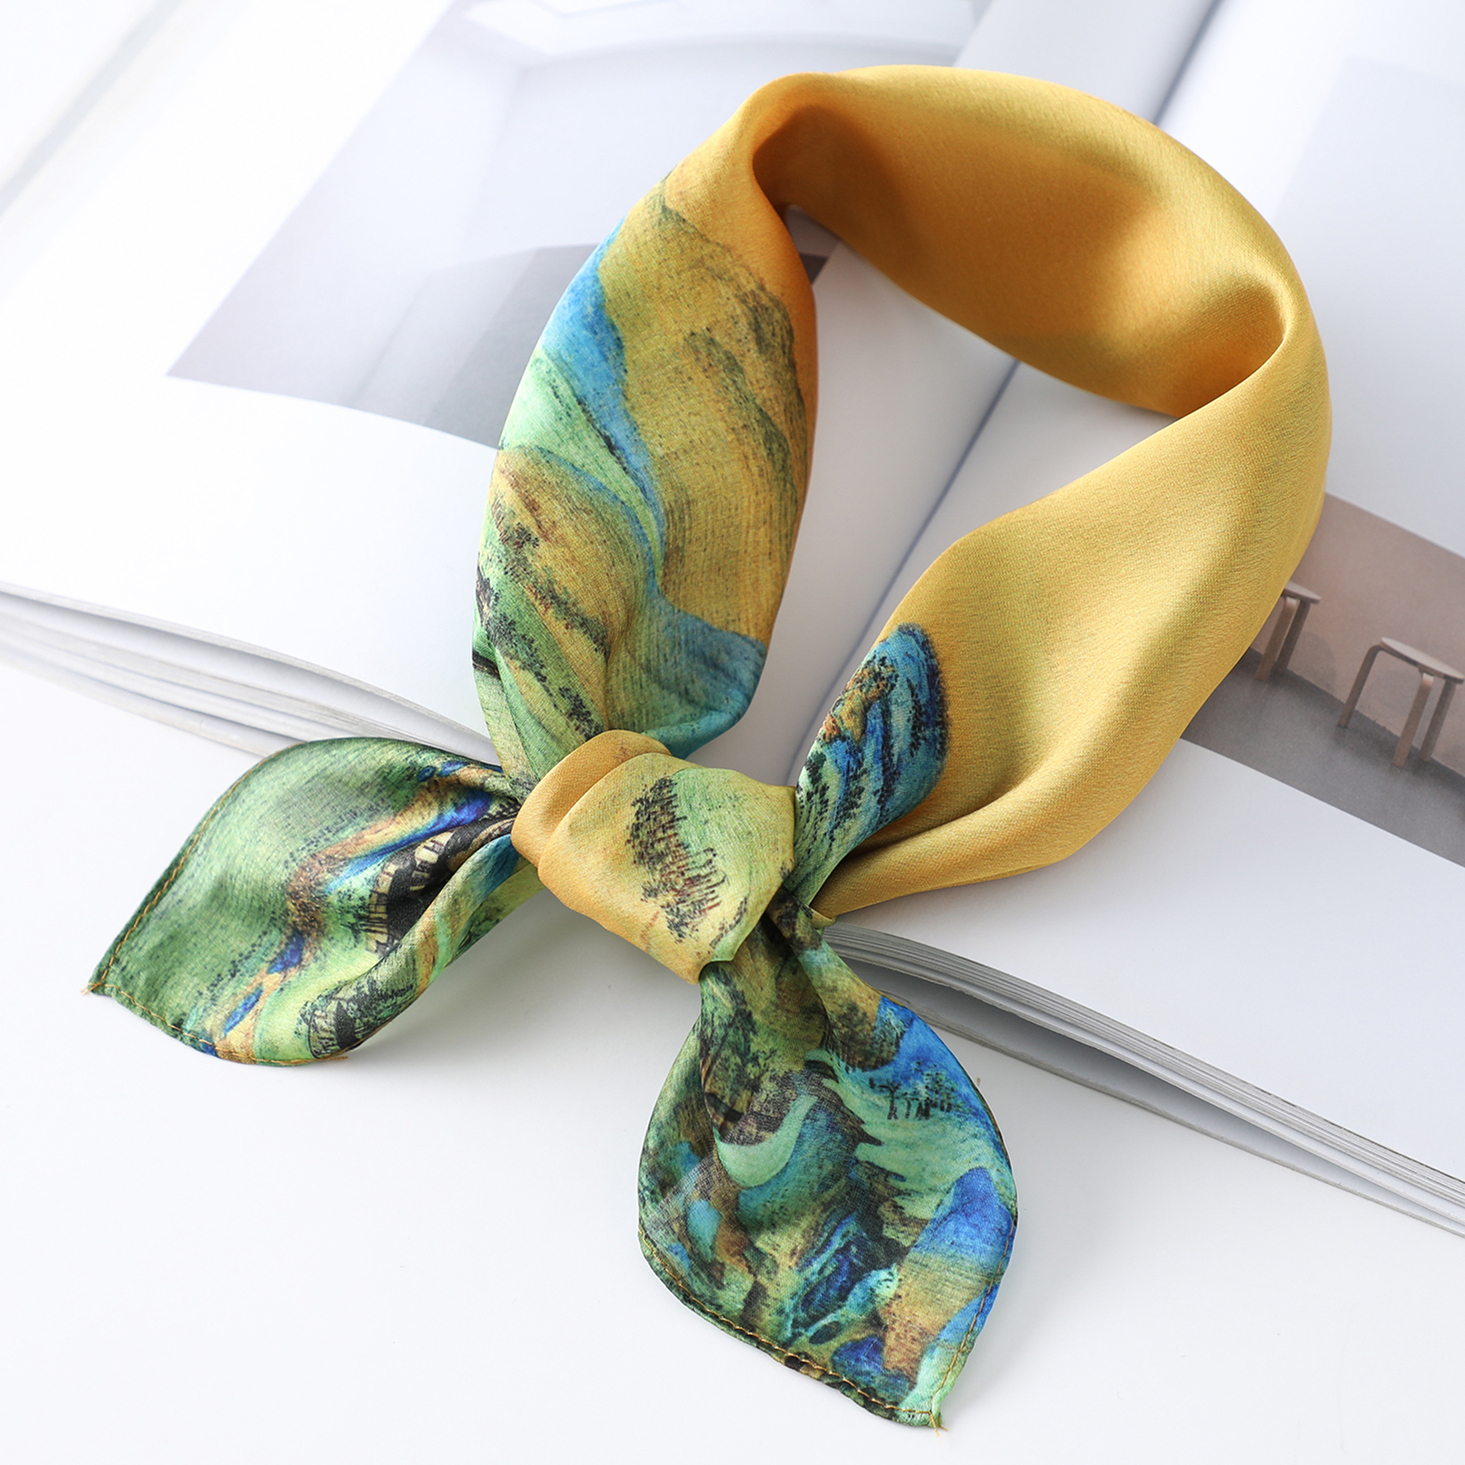 Silk Neck Scarf For Women Floral Print Shawls And Wraps Hair Band Accessories Tie Femmel Foulard Square Scarves Bandana